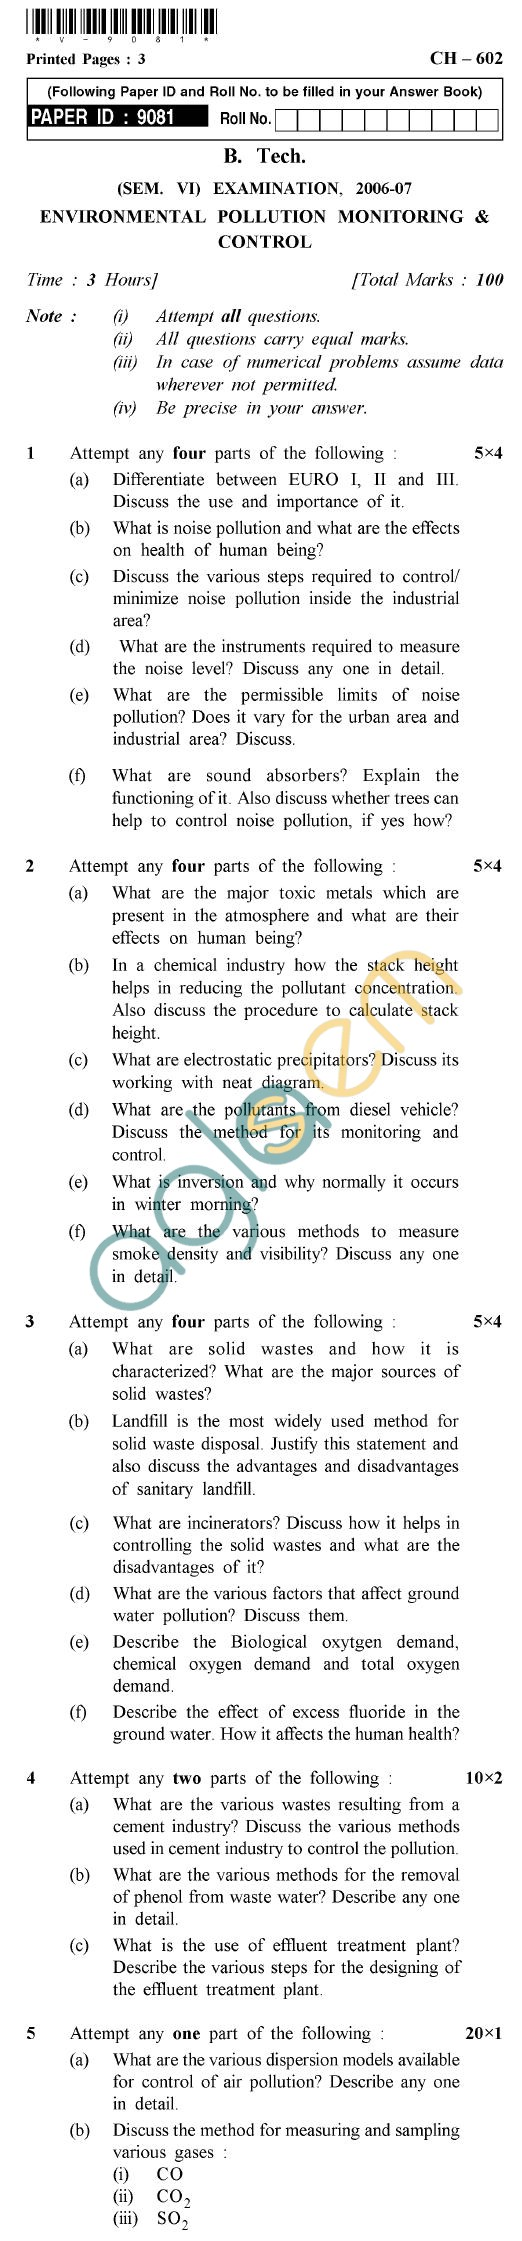 UPTU B.Tech Question Papers - CH-602 - Environmental Pollution Monitoring & Control